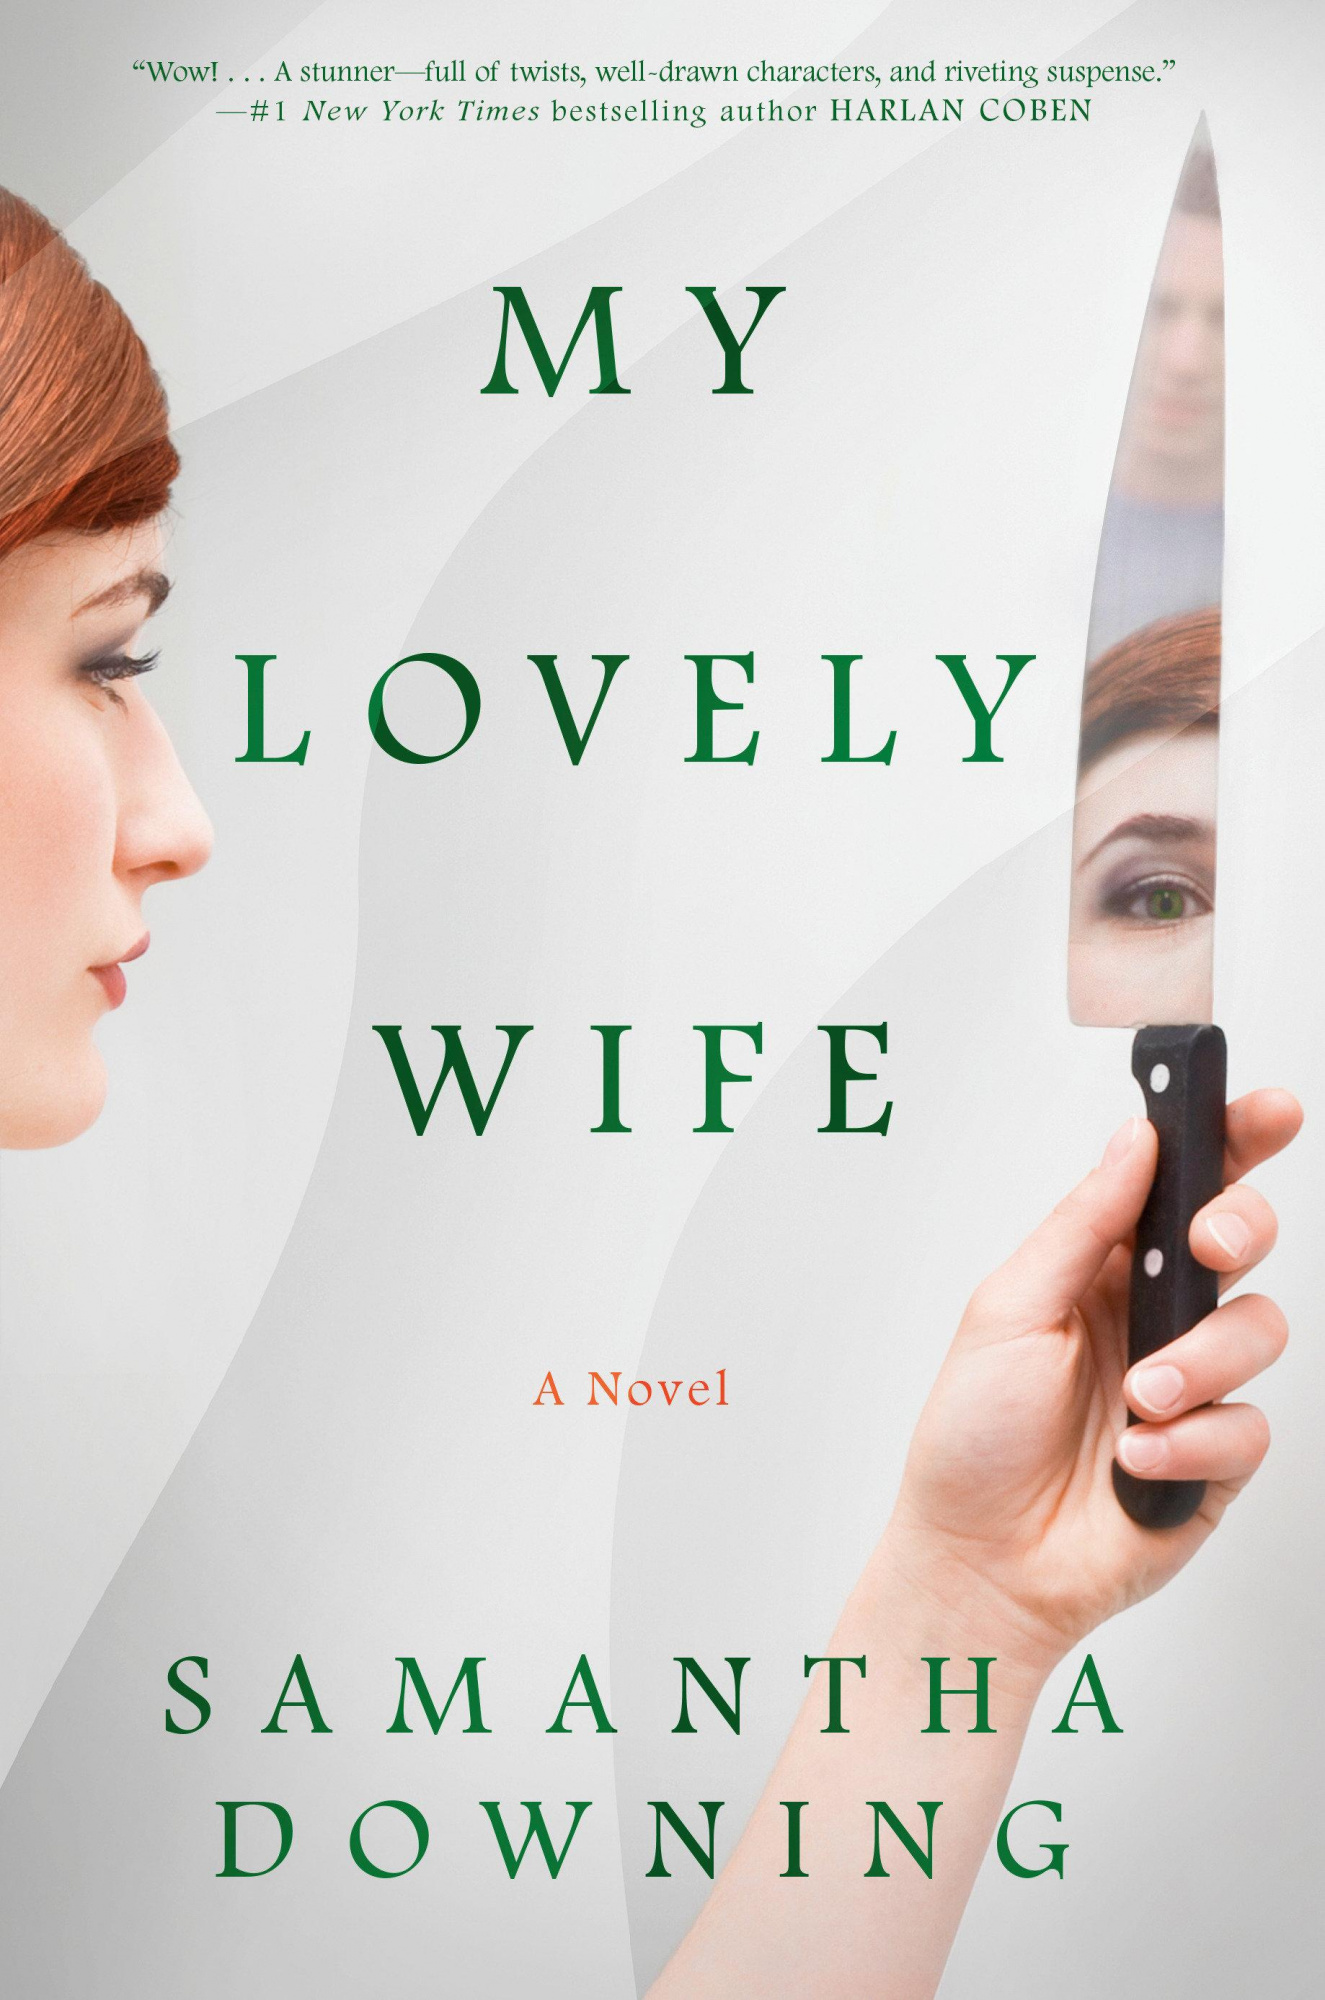 My Lovely Wife by Samantha Downing, ISBN: 9780451491725